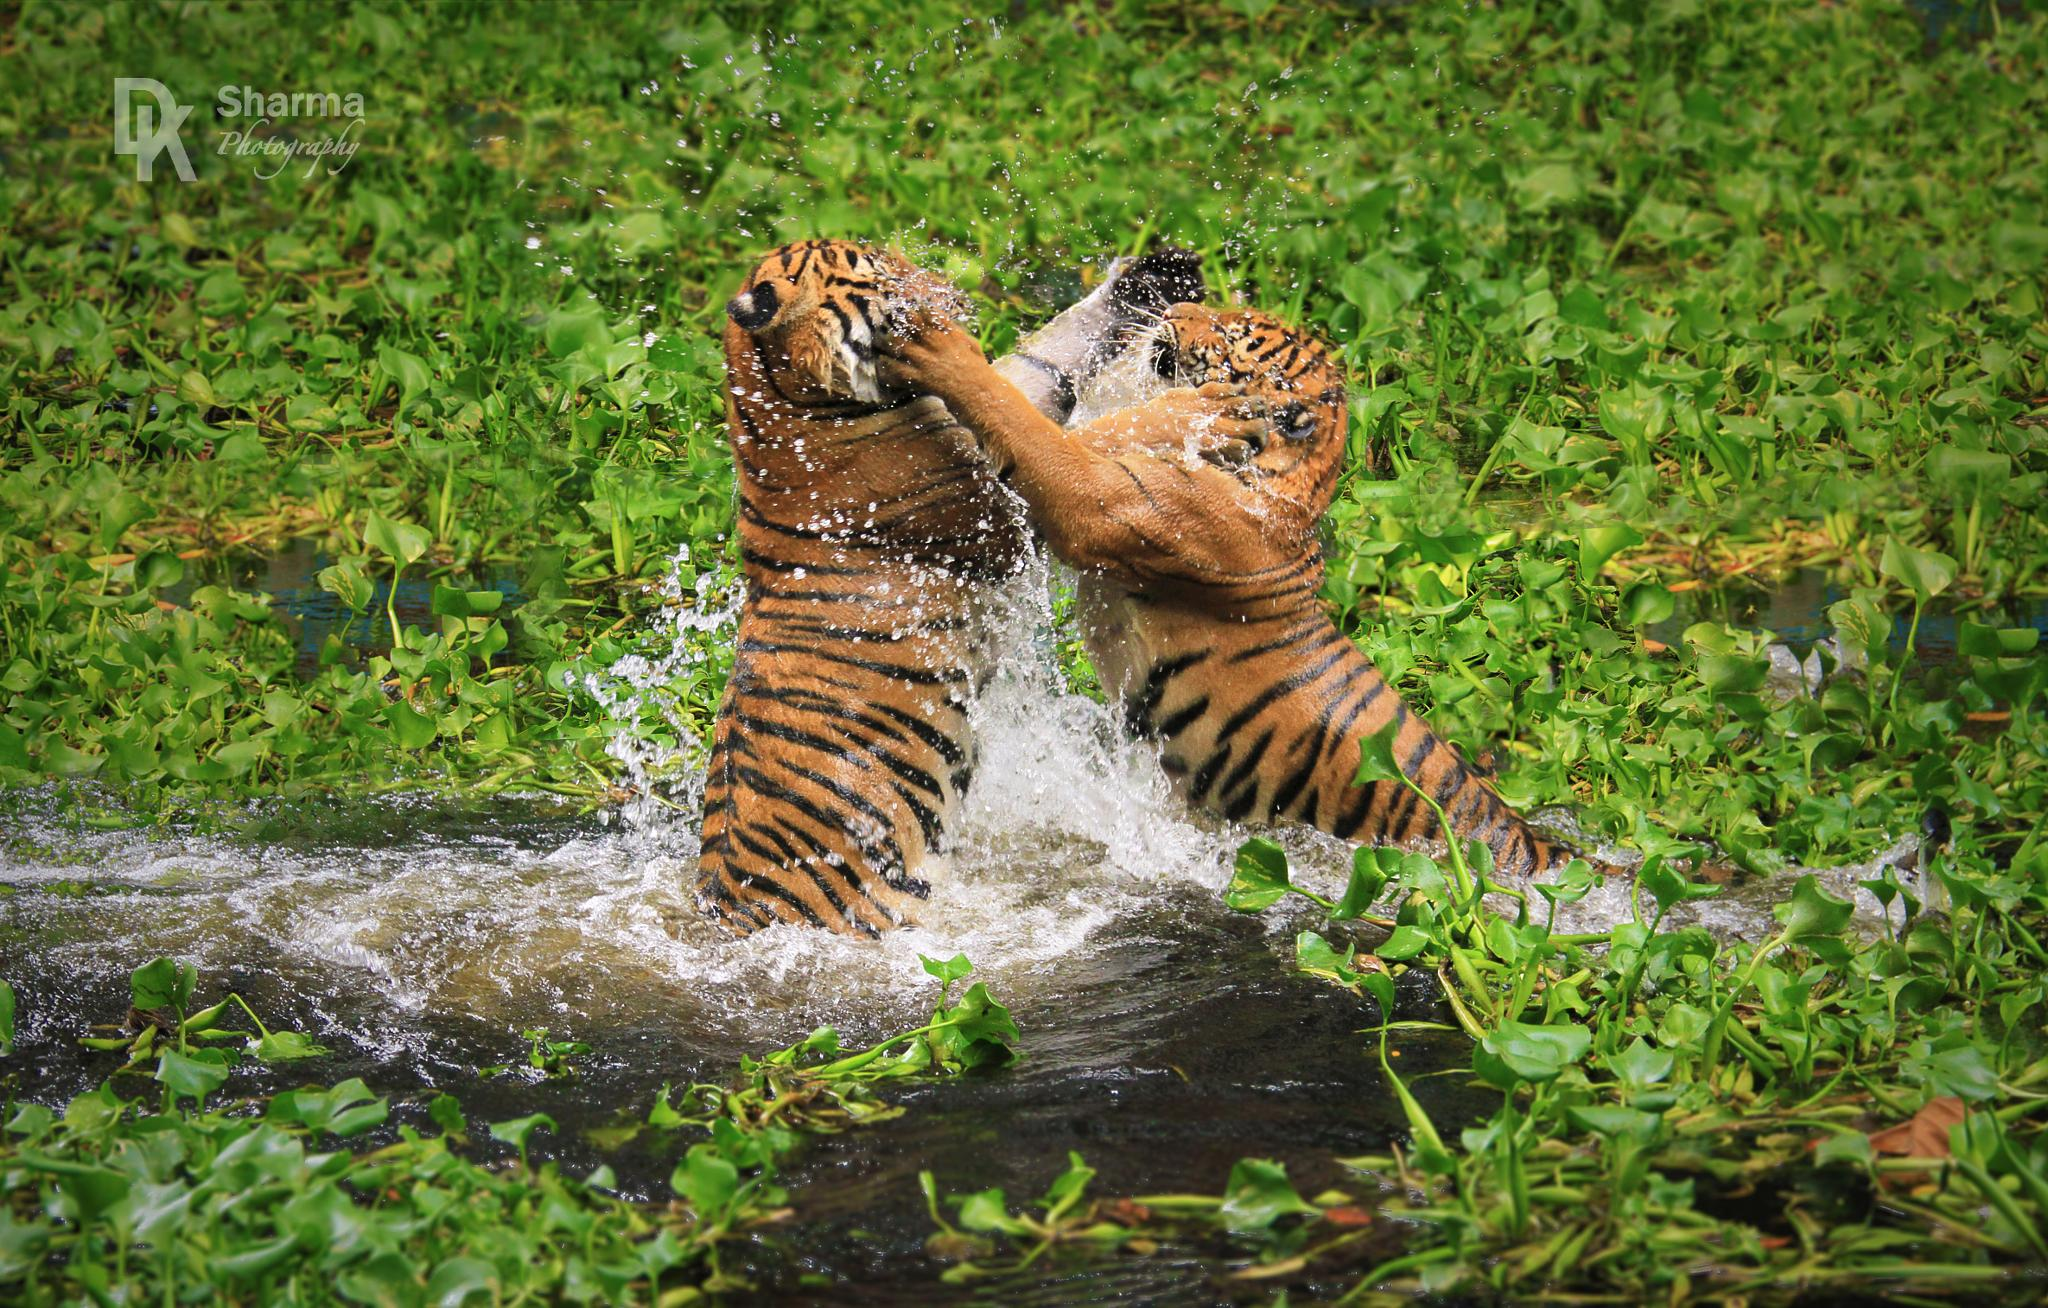 Friendly sibling fight (Malay Tiger) by DK Sharma Photography